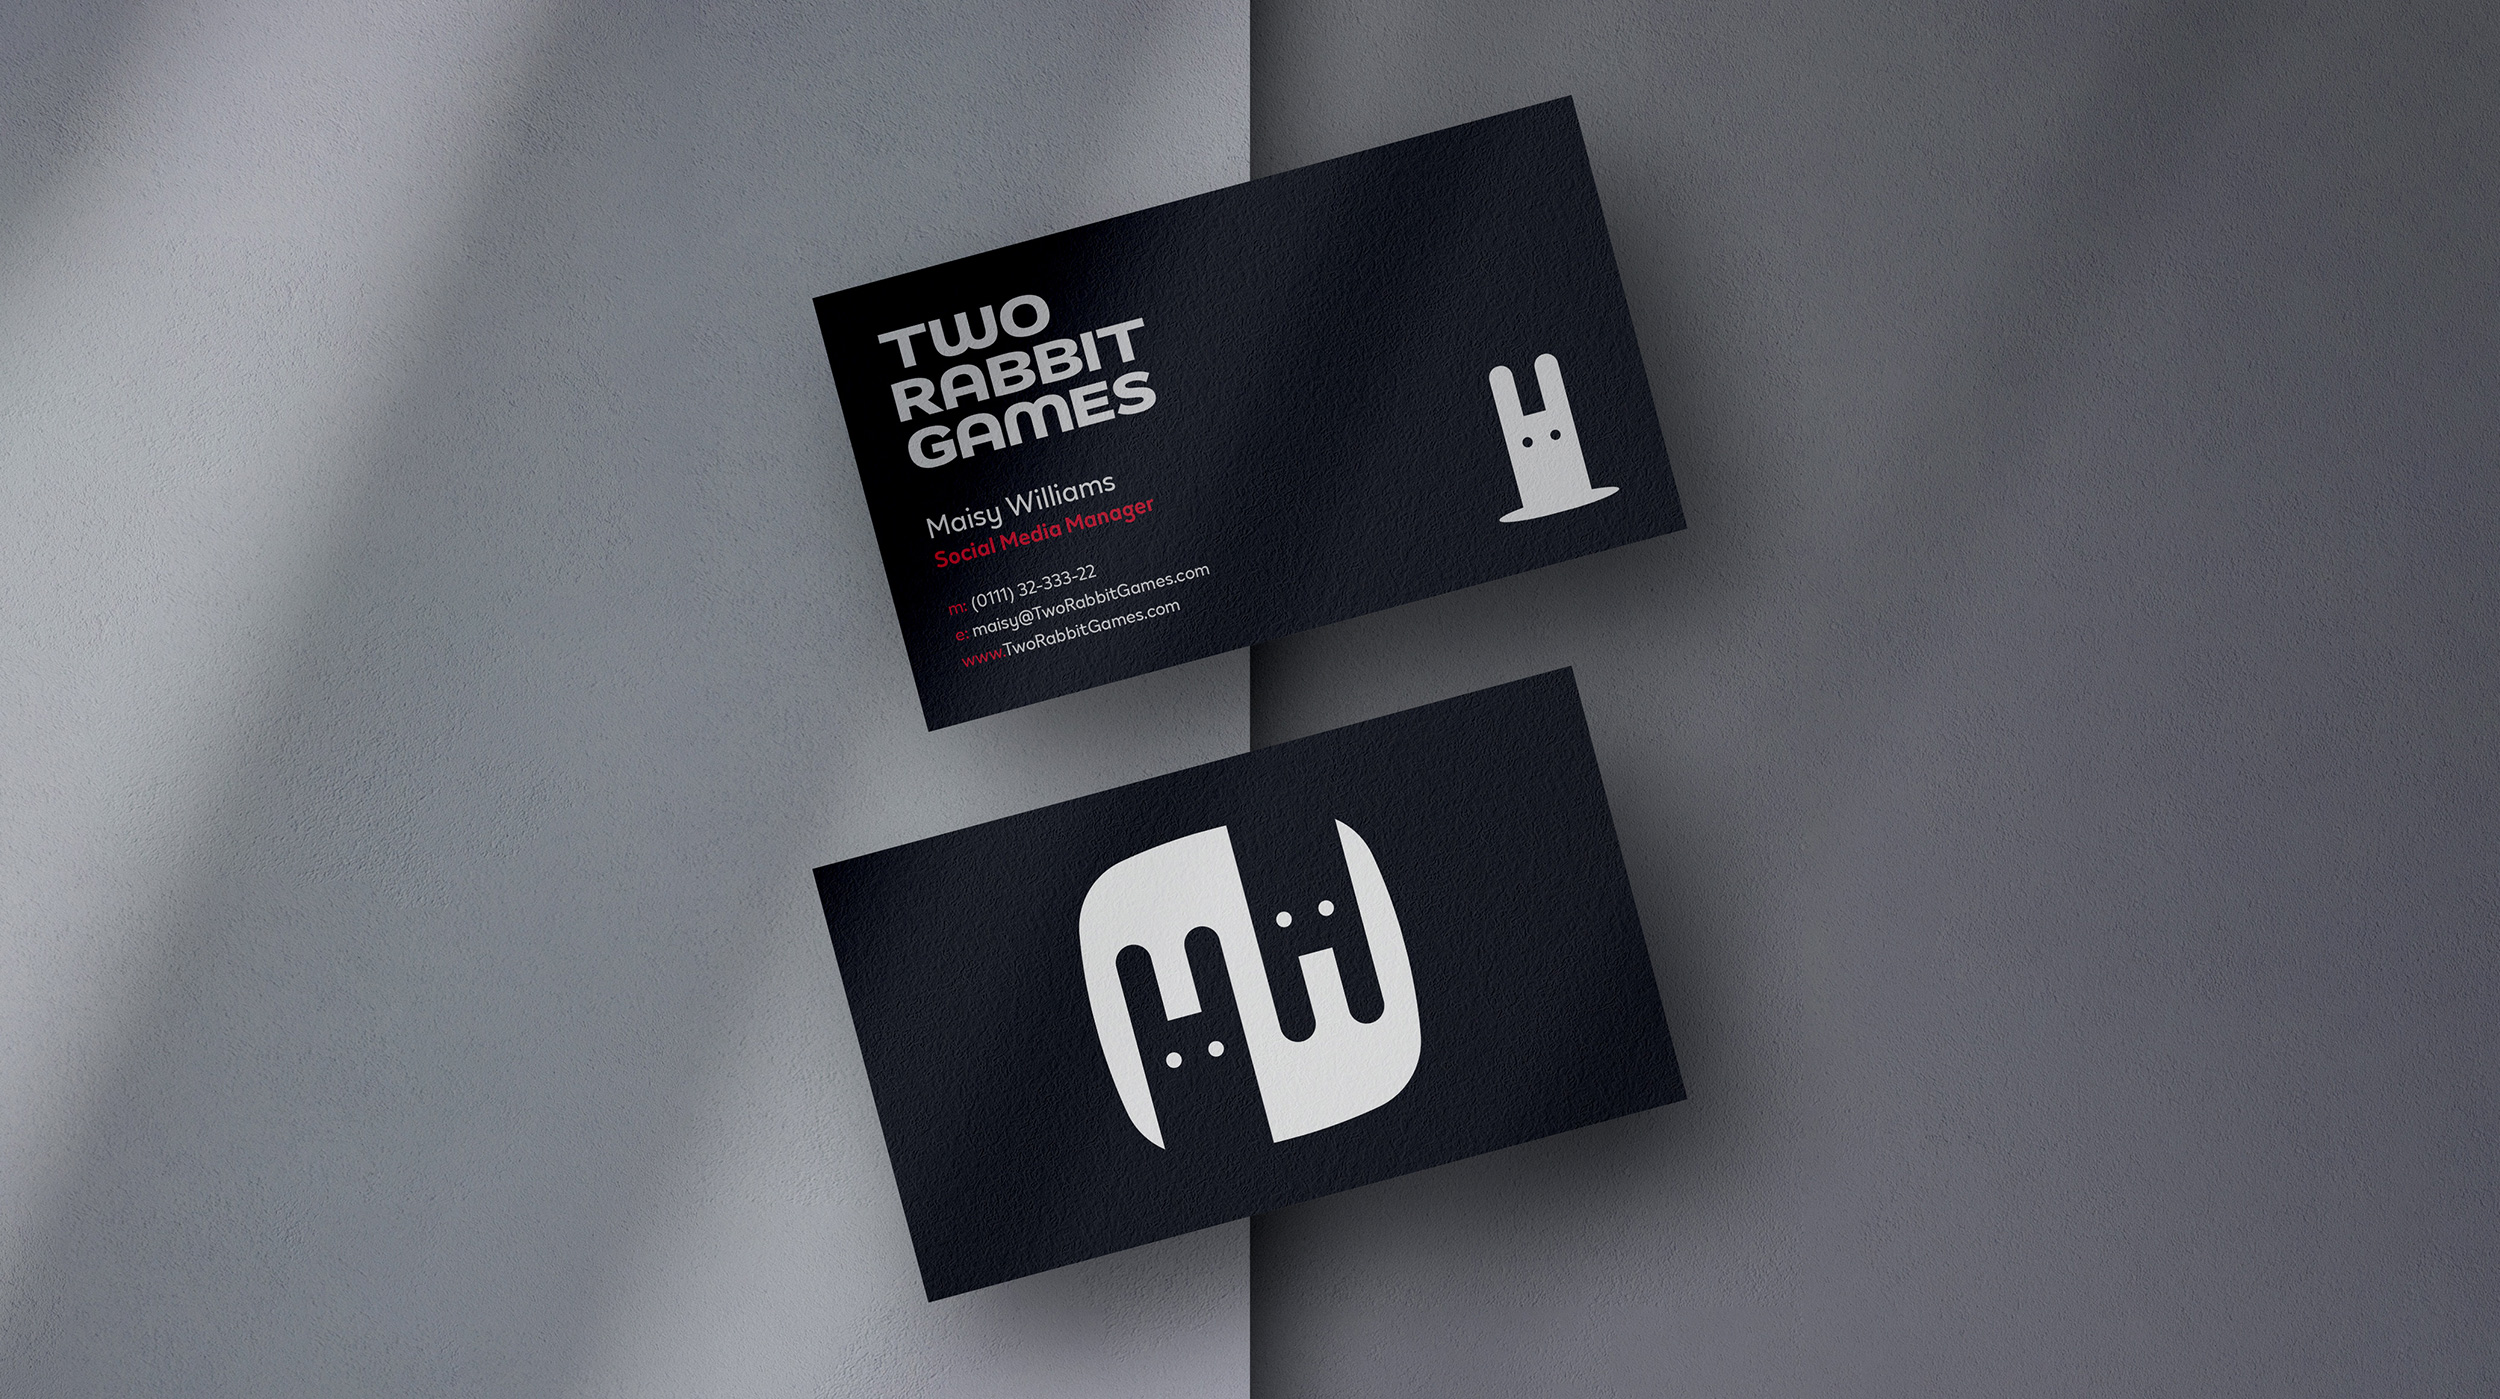 Two-Rabbit-Games_Visuals_Bus